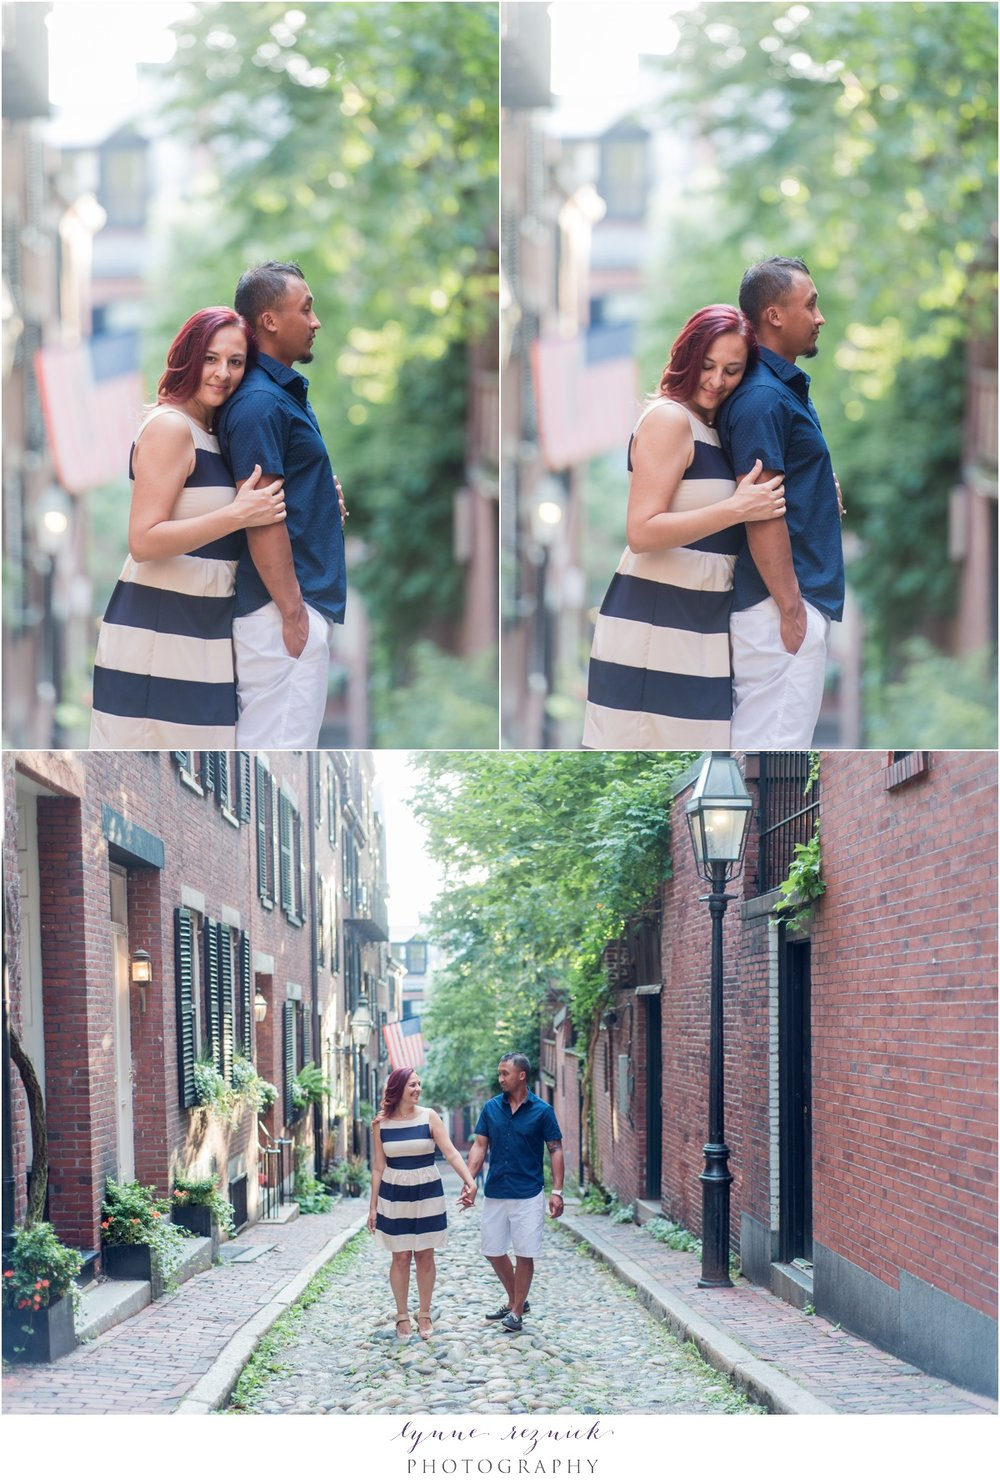 Acorn Street photos of Boston engaged couple in navy and white